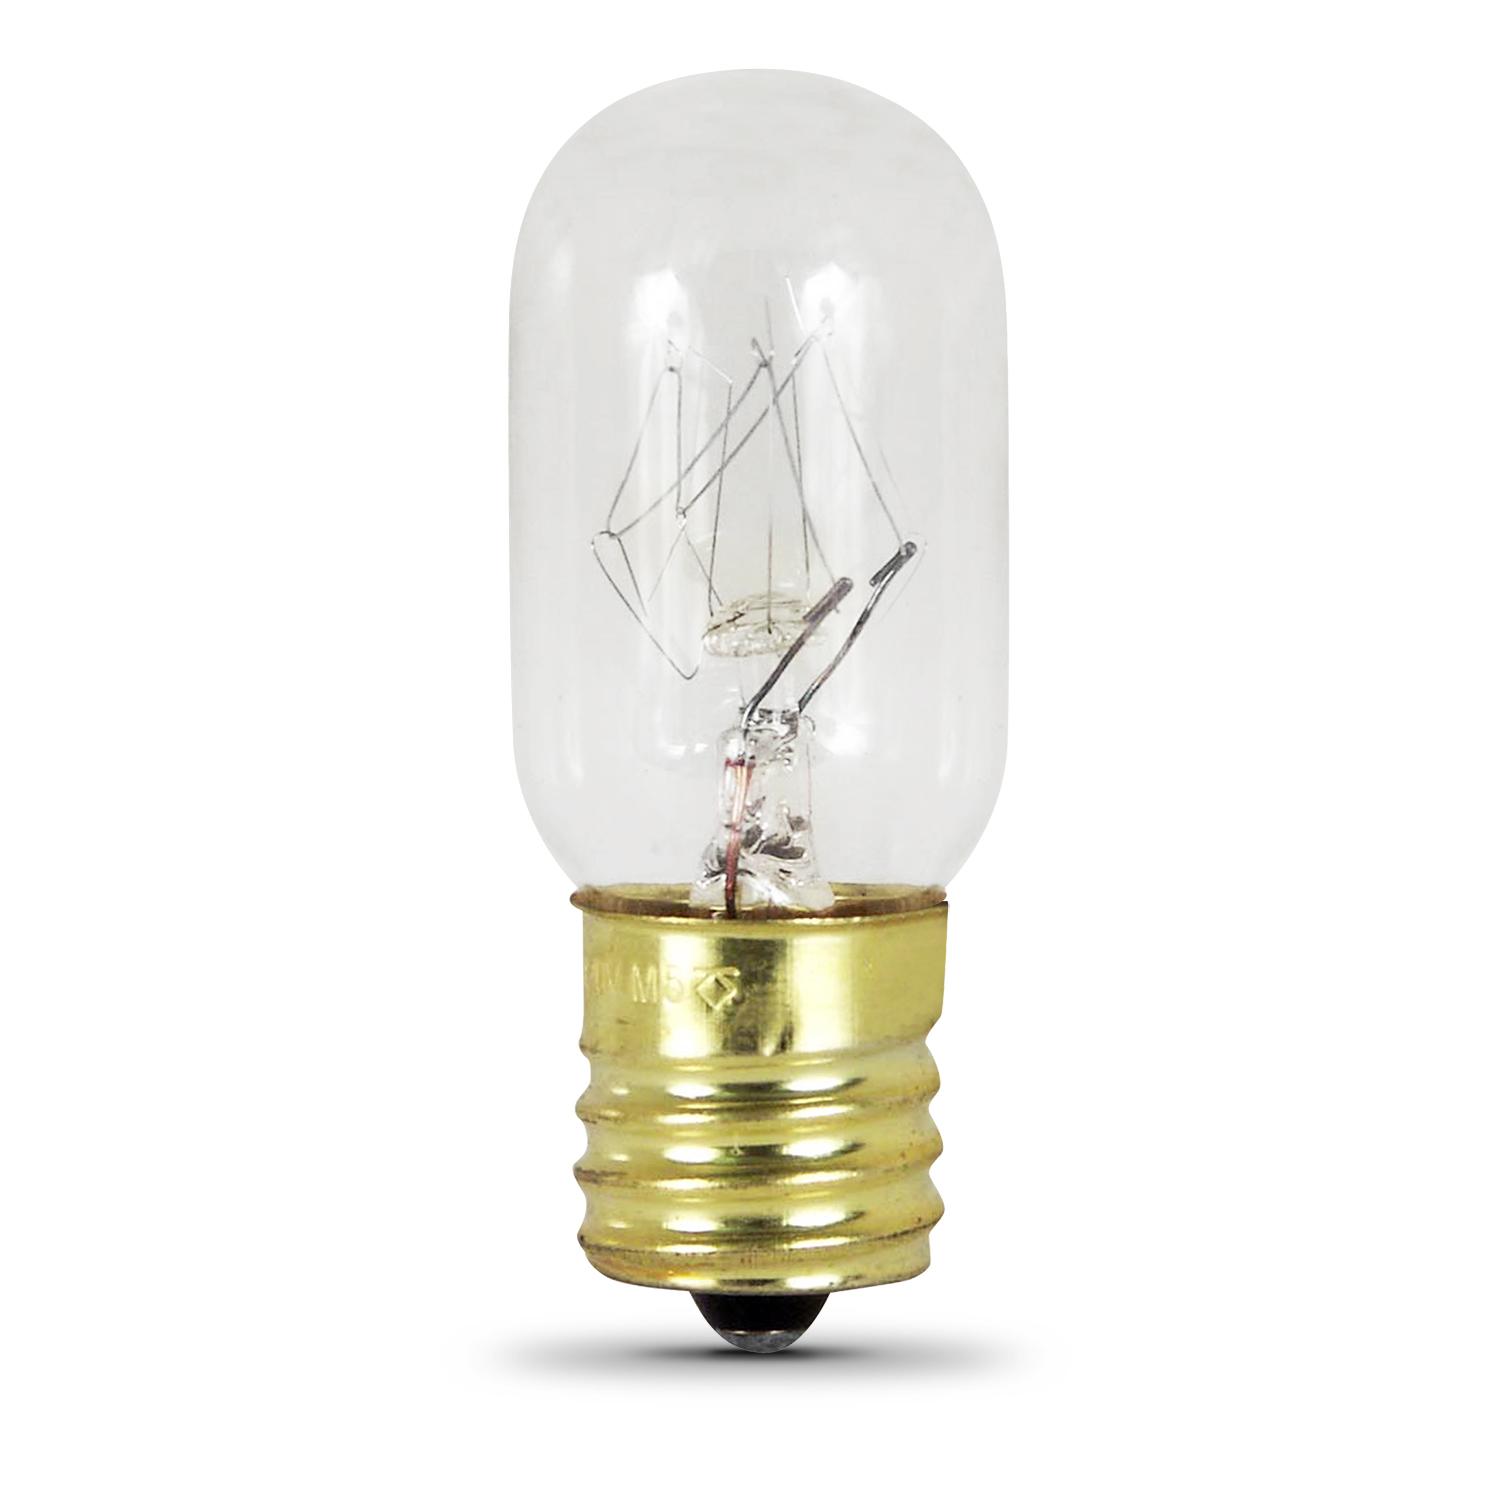 15 Watt Soft White T7 Dimmable Incandescent Light Bulb (BP15T7N)